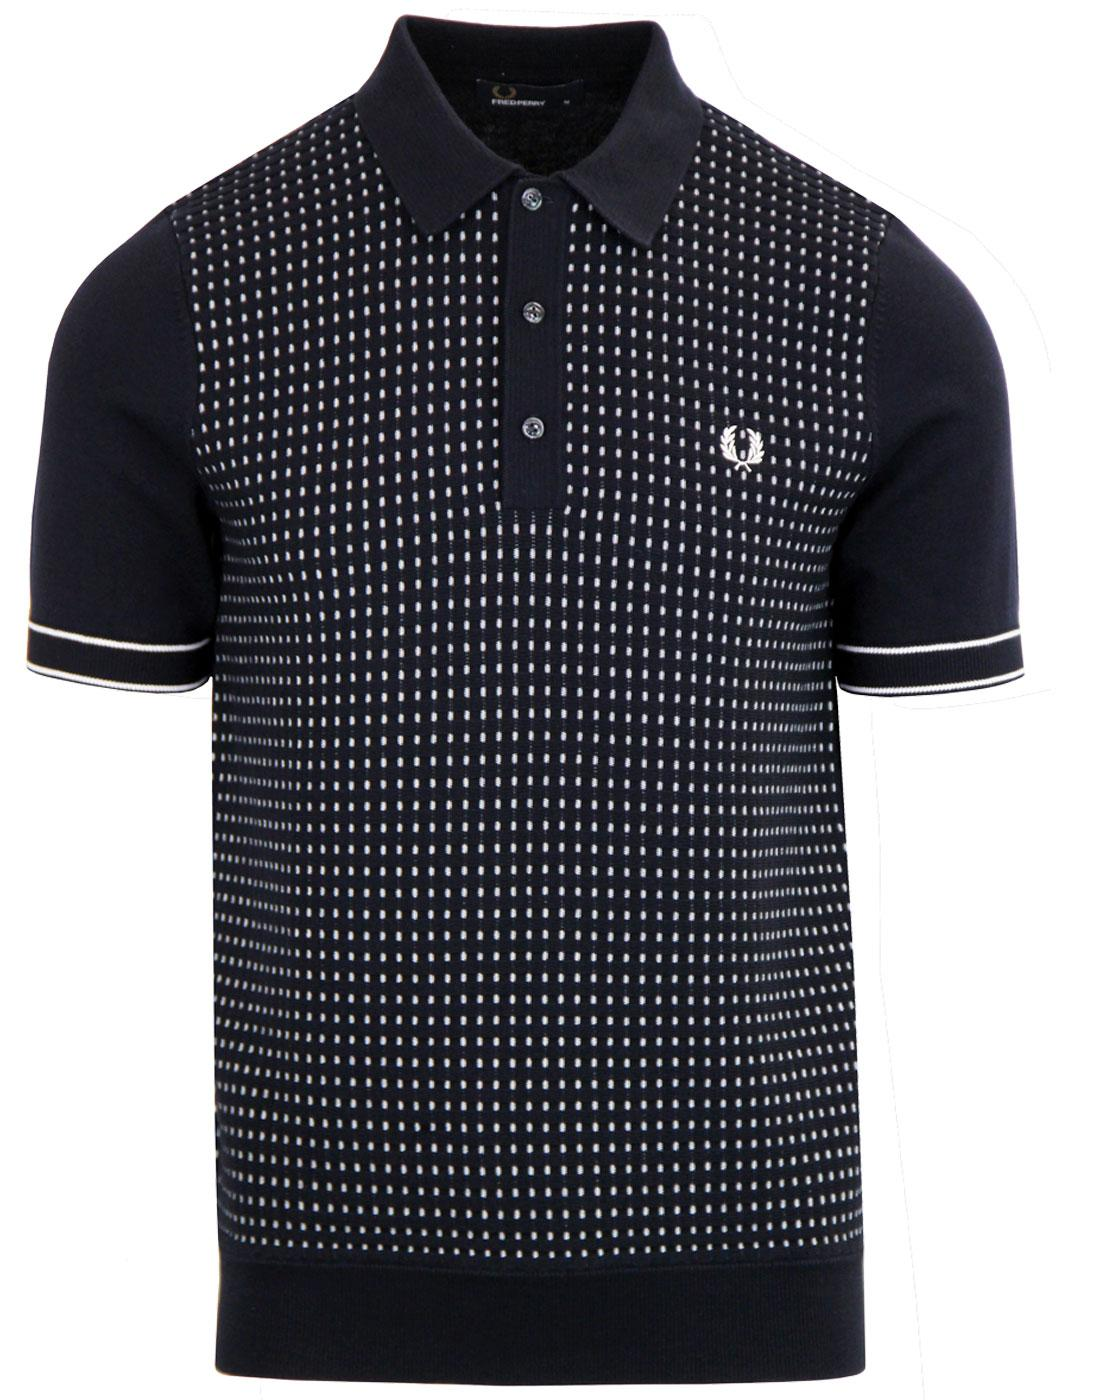 K3515 JACQUARD PANEL POLO NAVY